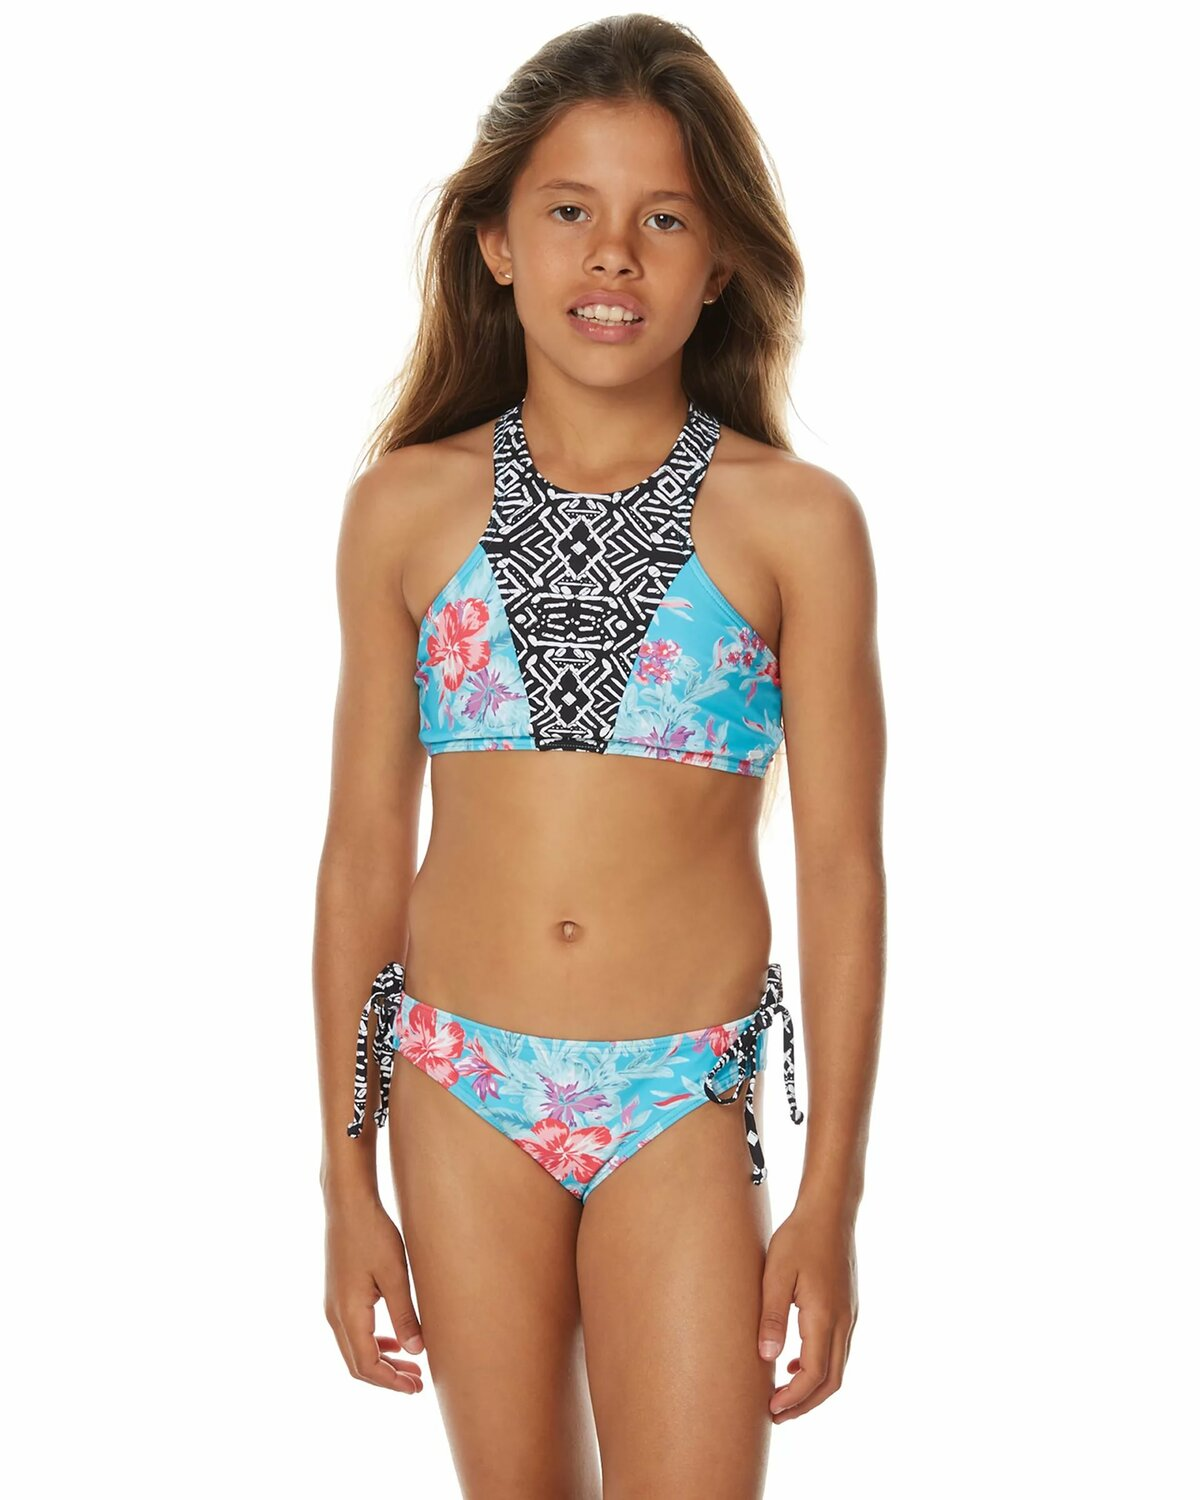 Swimwear for young teens